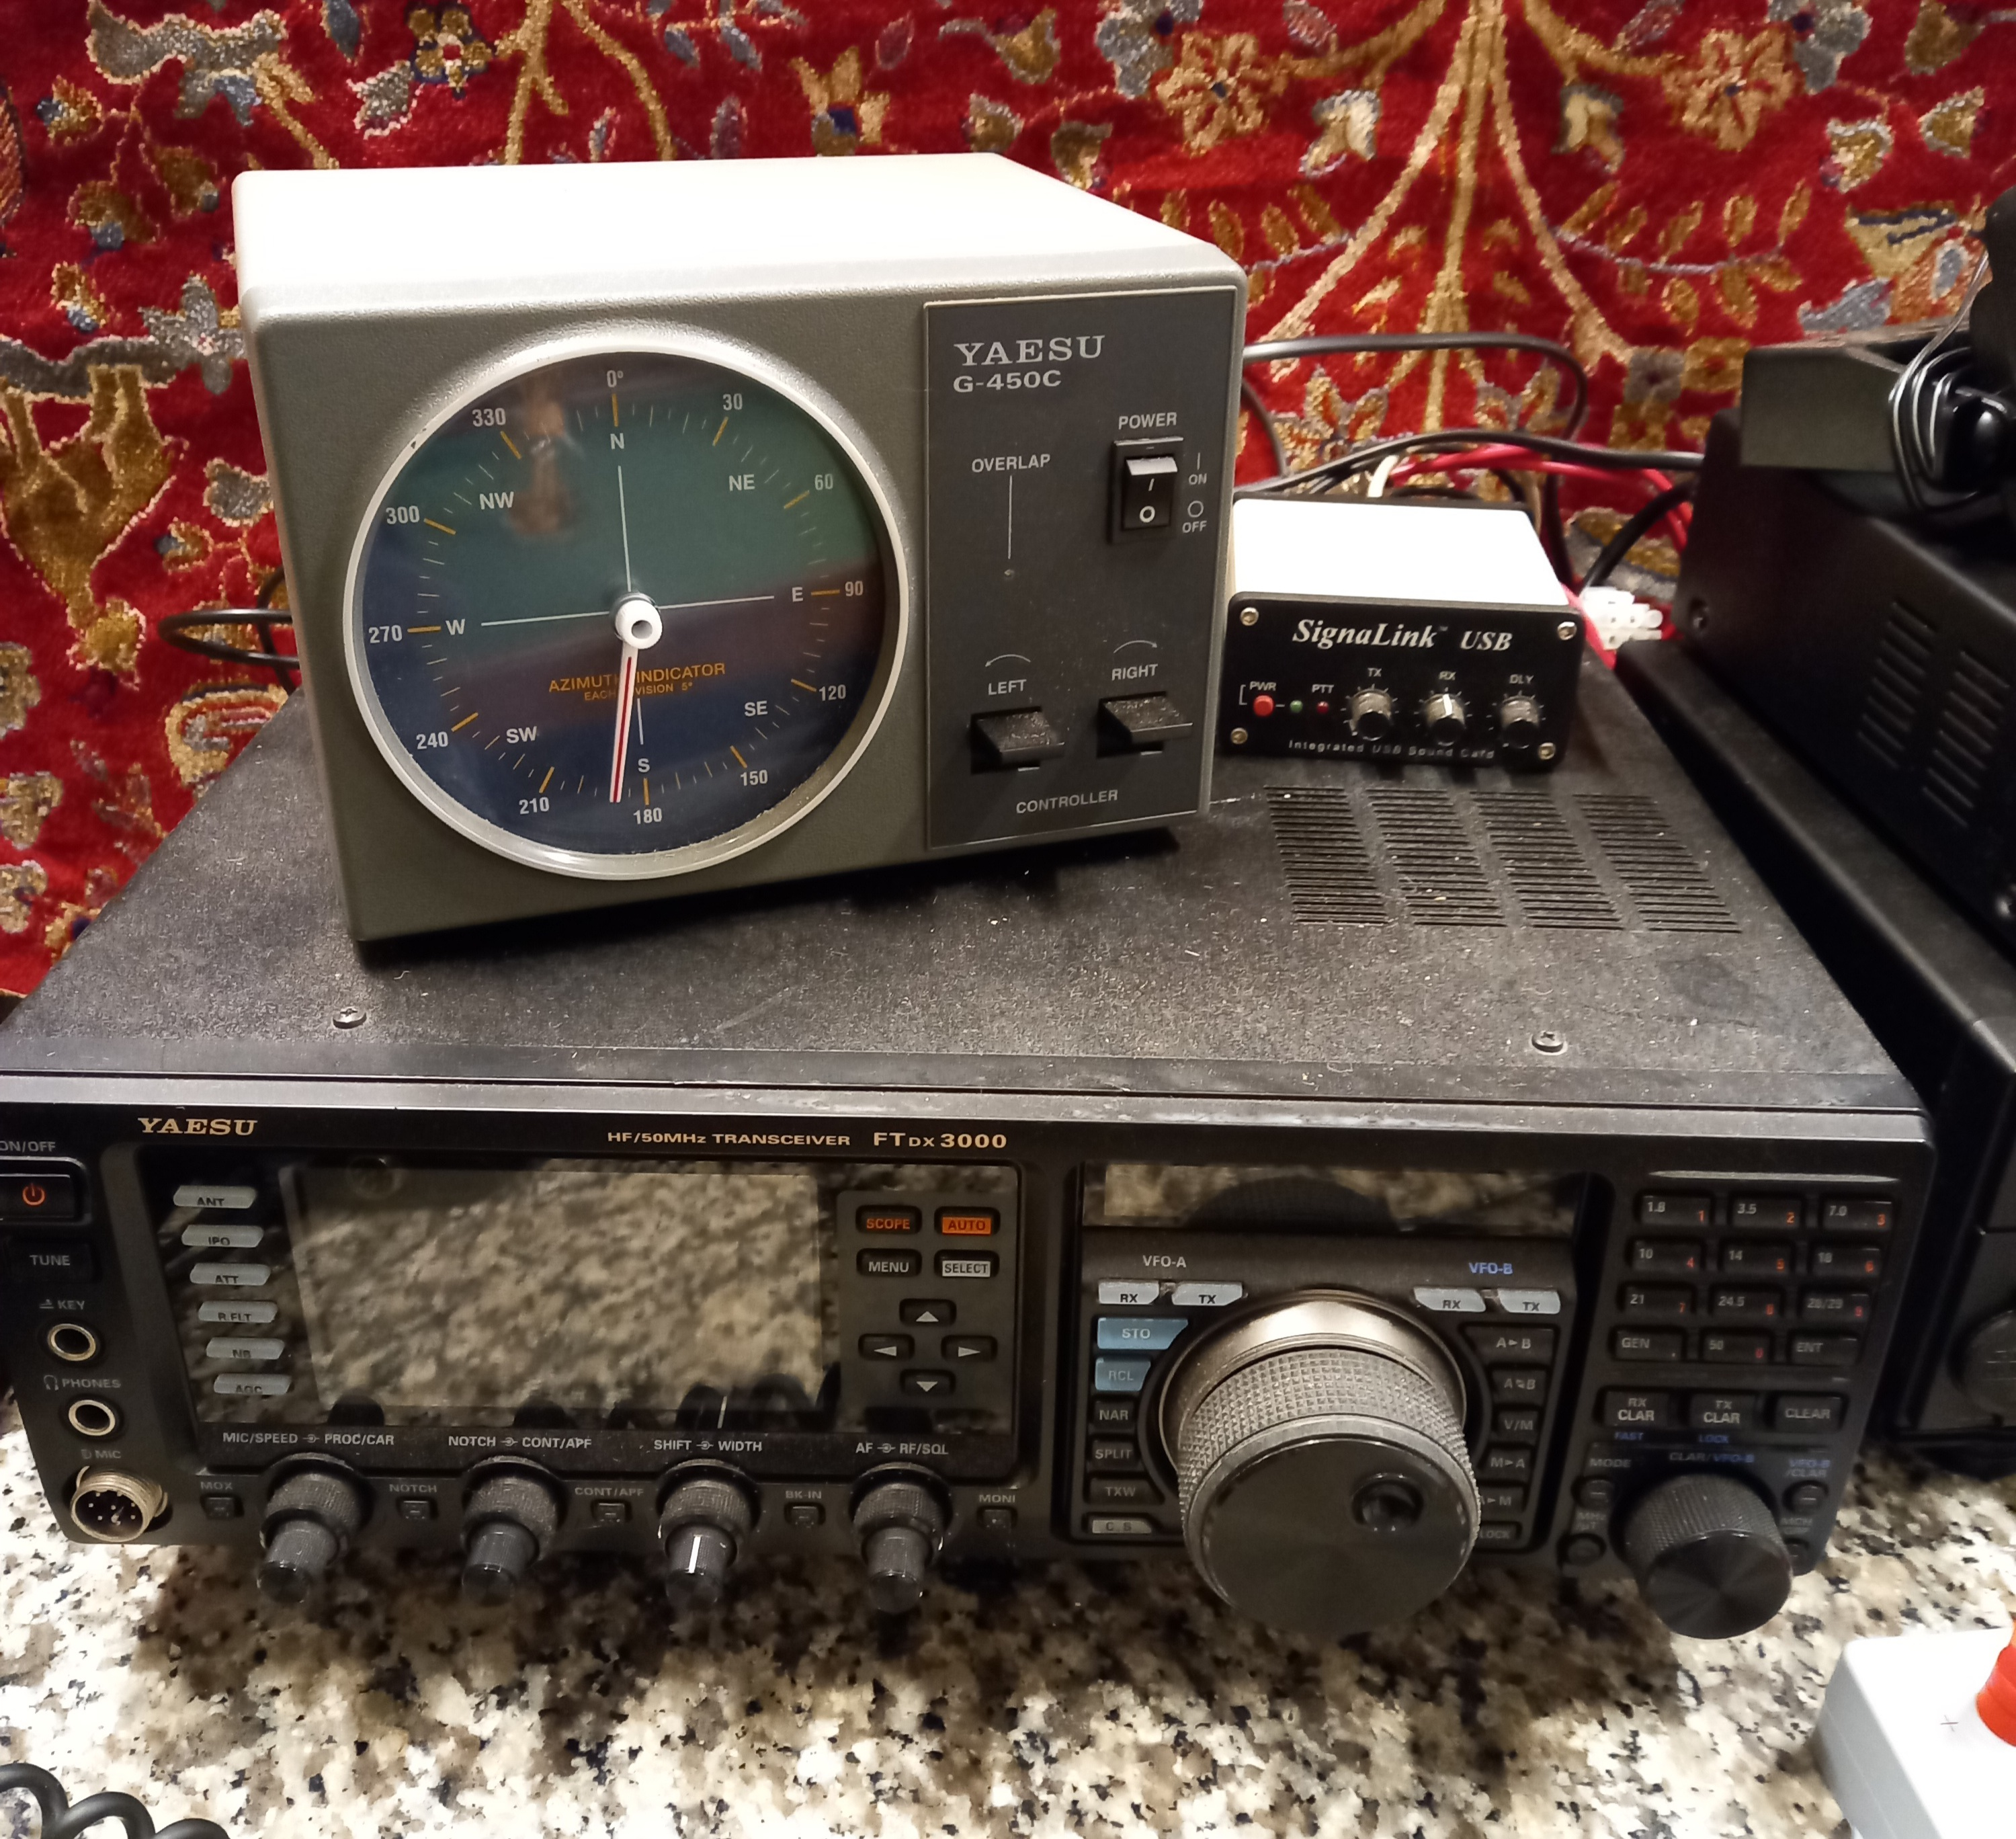 A collection of amateur 'ham' radio equipment, comprising: a Yaesu FTDX 3000 transceiver, an ATU 897 - Image 8 of 13